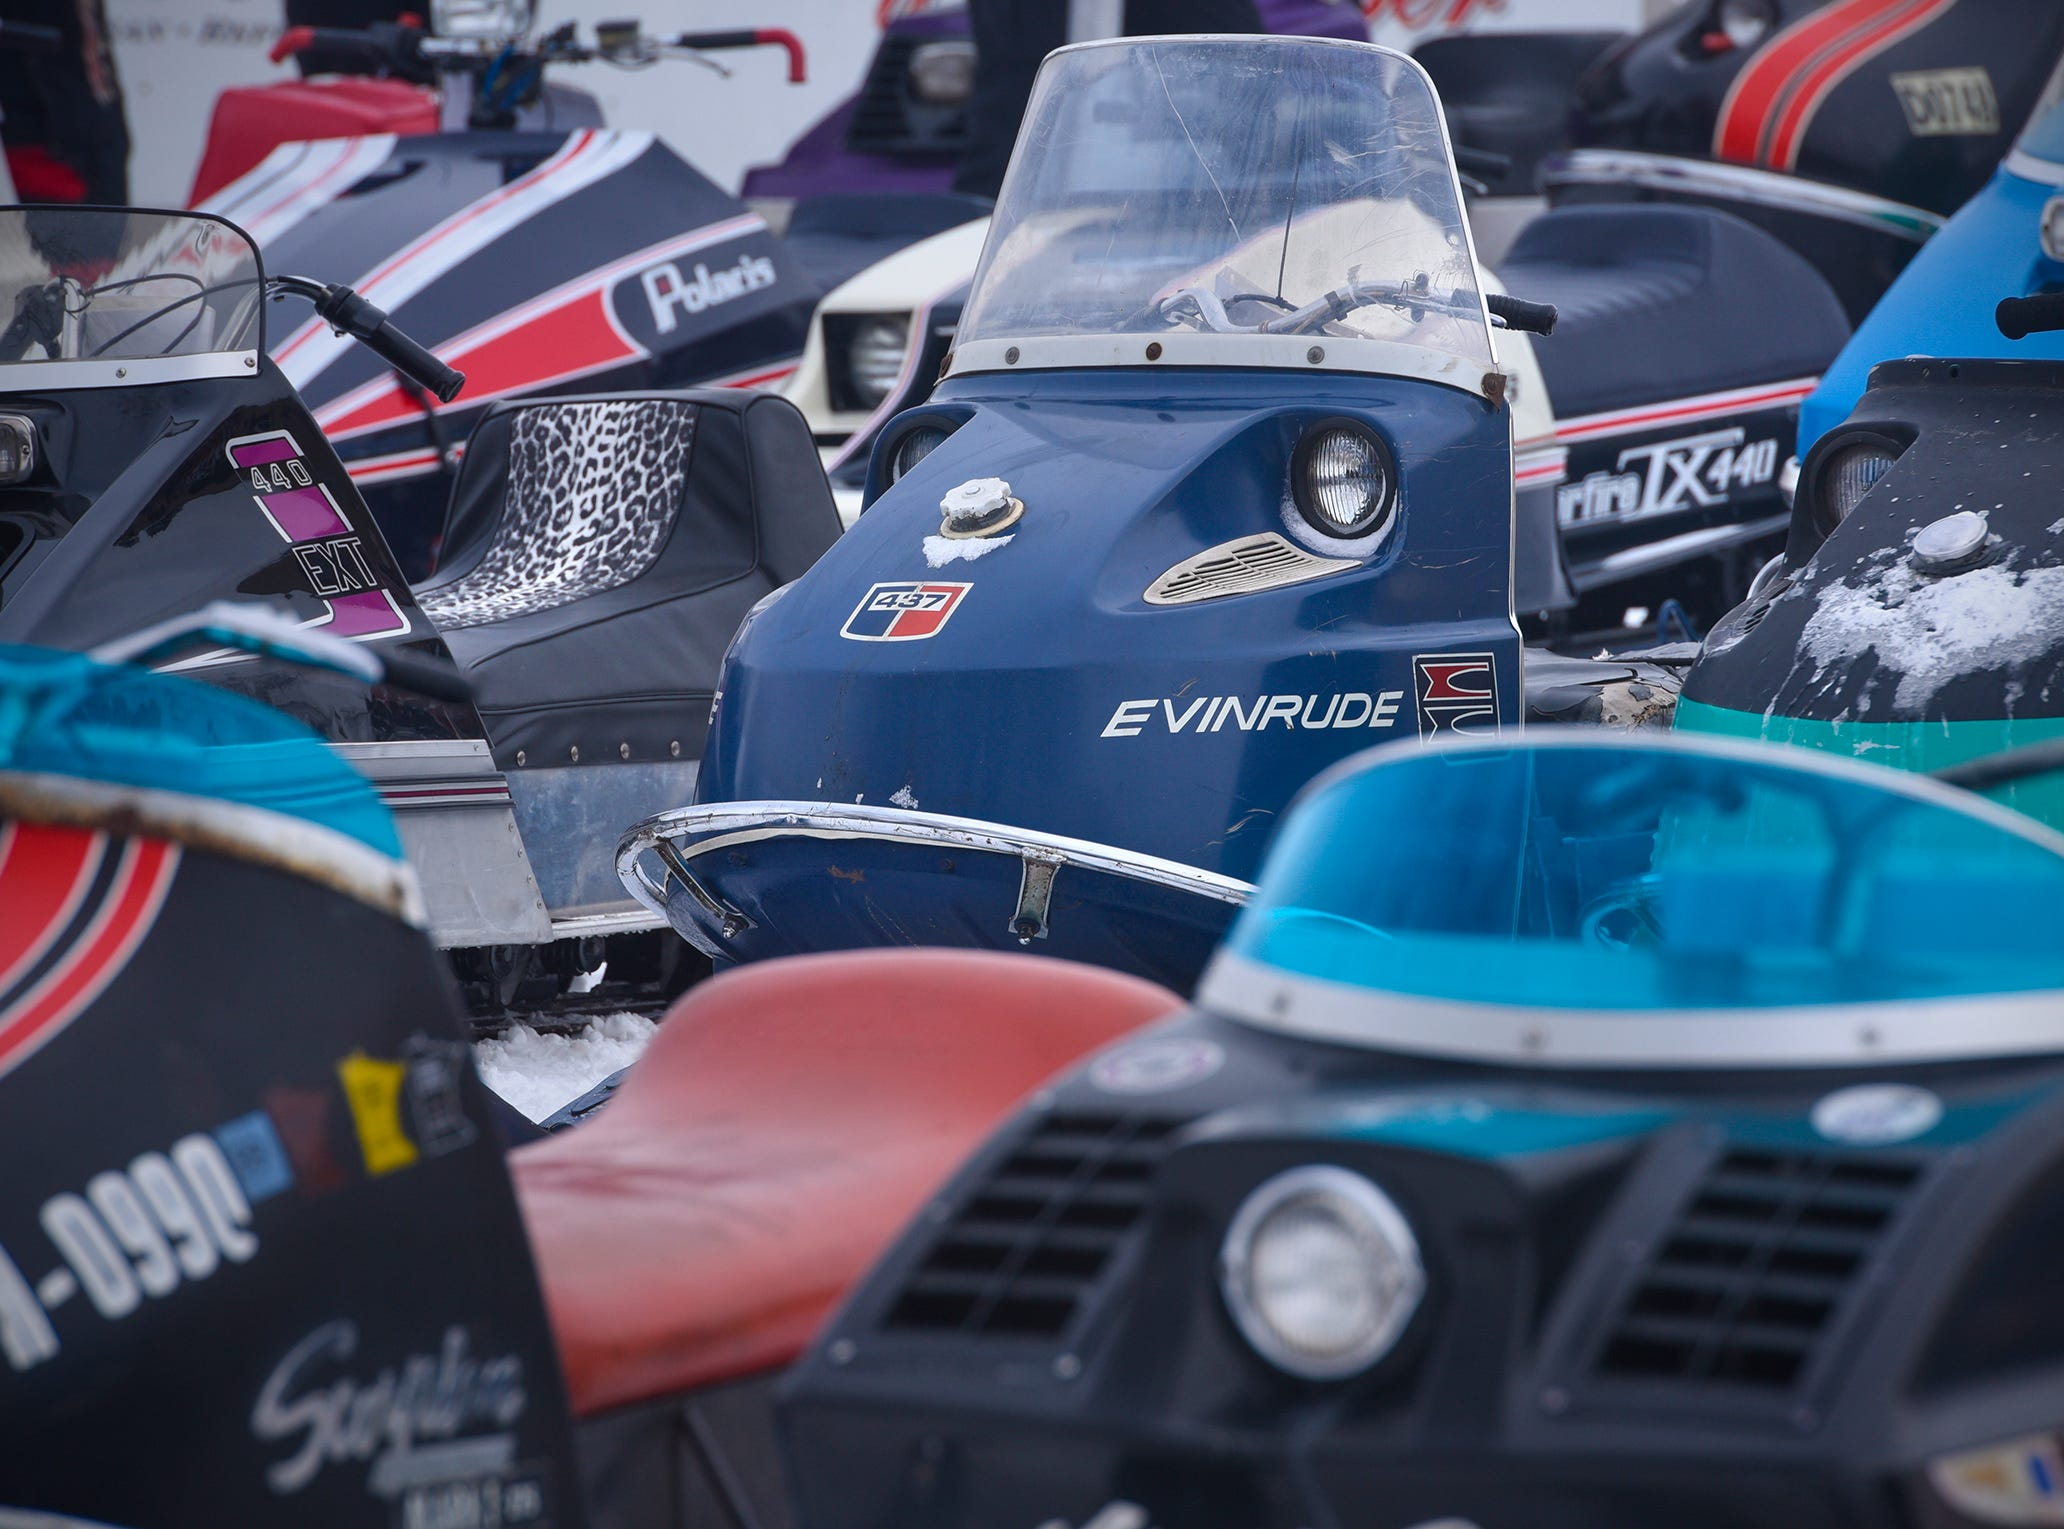 Vintage sleds are all lined up Saturday, Feb. 9, during the St. Stephen River Runners snowmobile club's 50th Anniversary Celebration in St. Stephen.